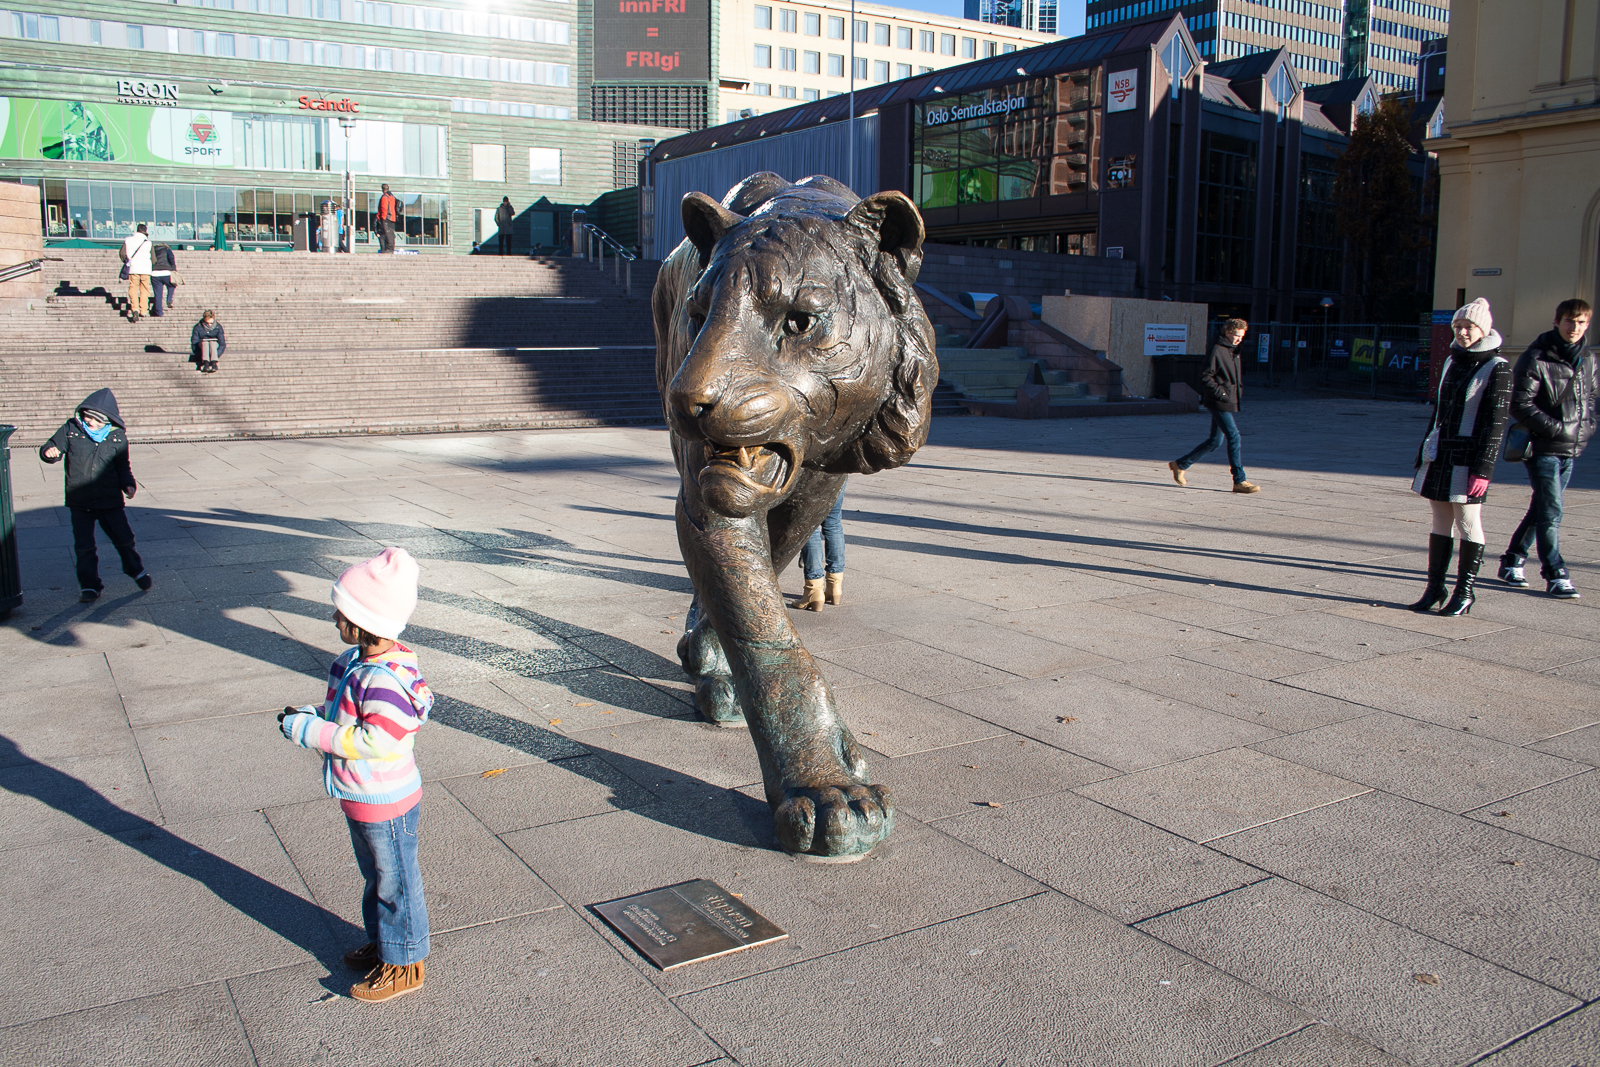 The Oslo Tiger - Central Station, Oslo Norway